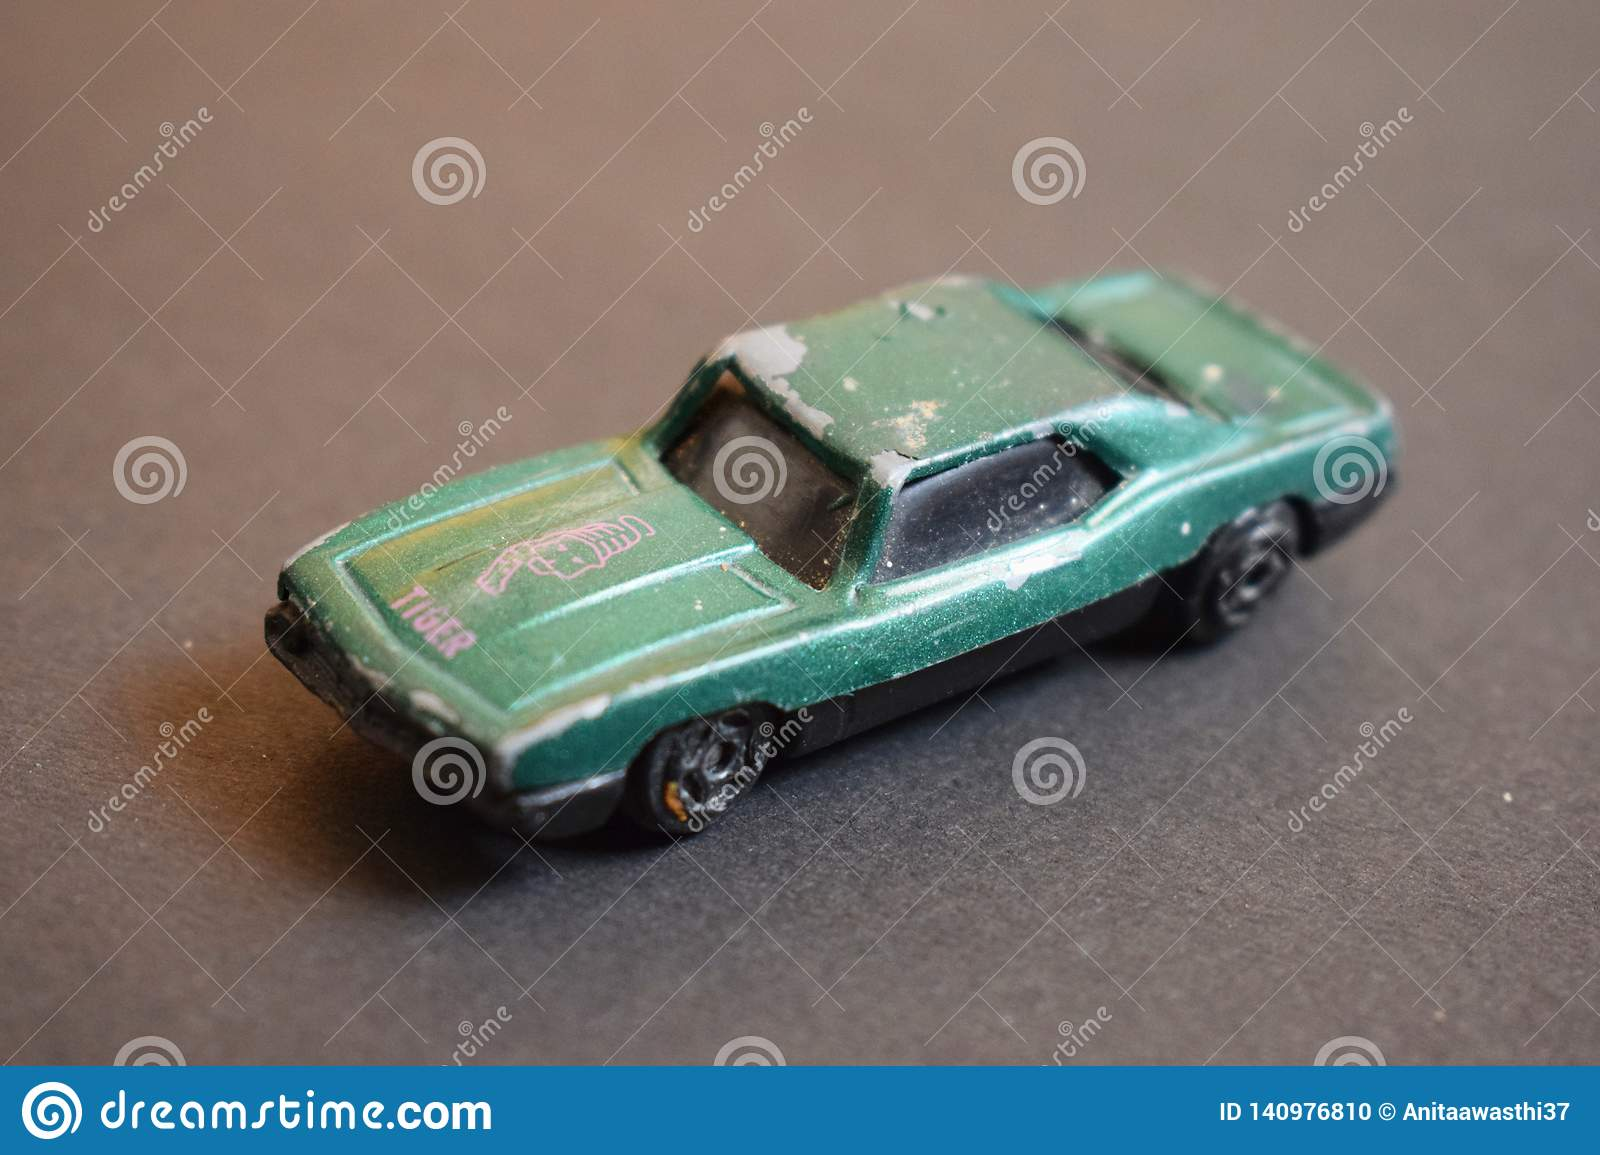 Close up of green coloured destroyed toy car.